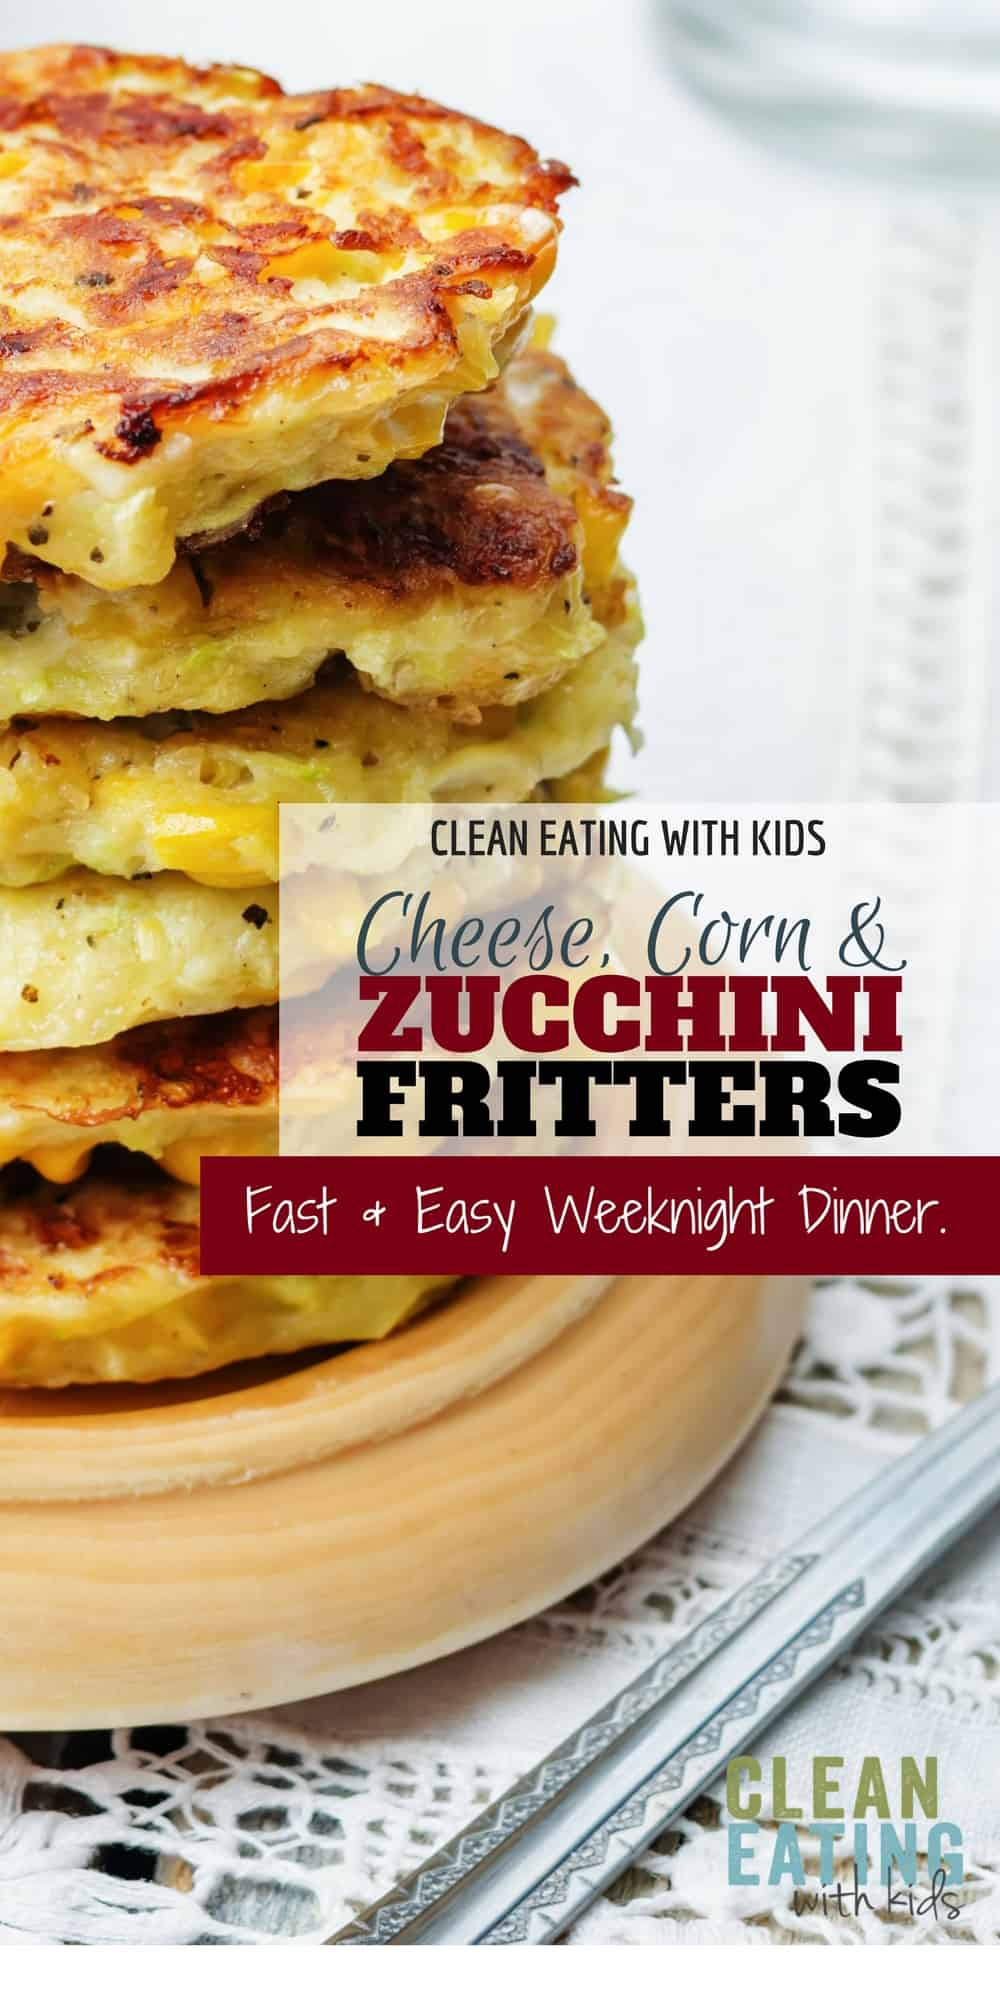 Clean Eating Corn, Cheese & Zucchini Fritters. My kids LOVE these!! Made them three times on the weekend and even my friends (fussy) kids went back for seconds!